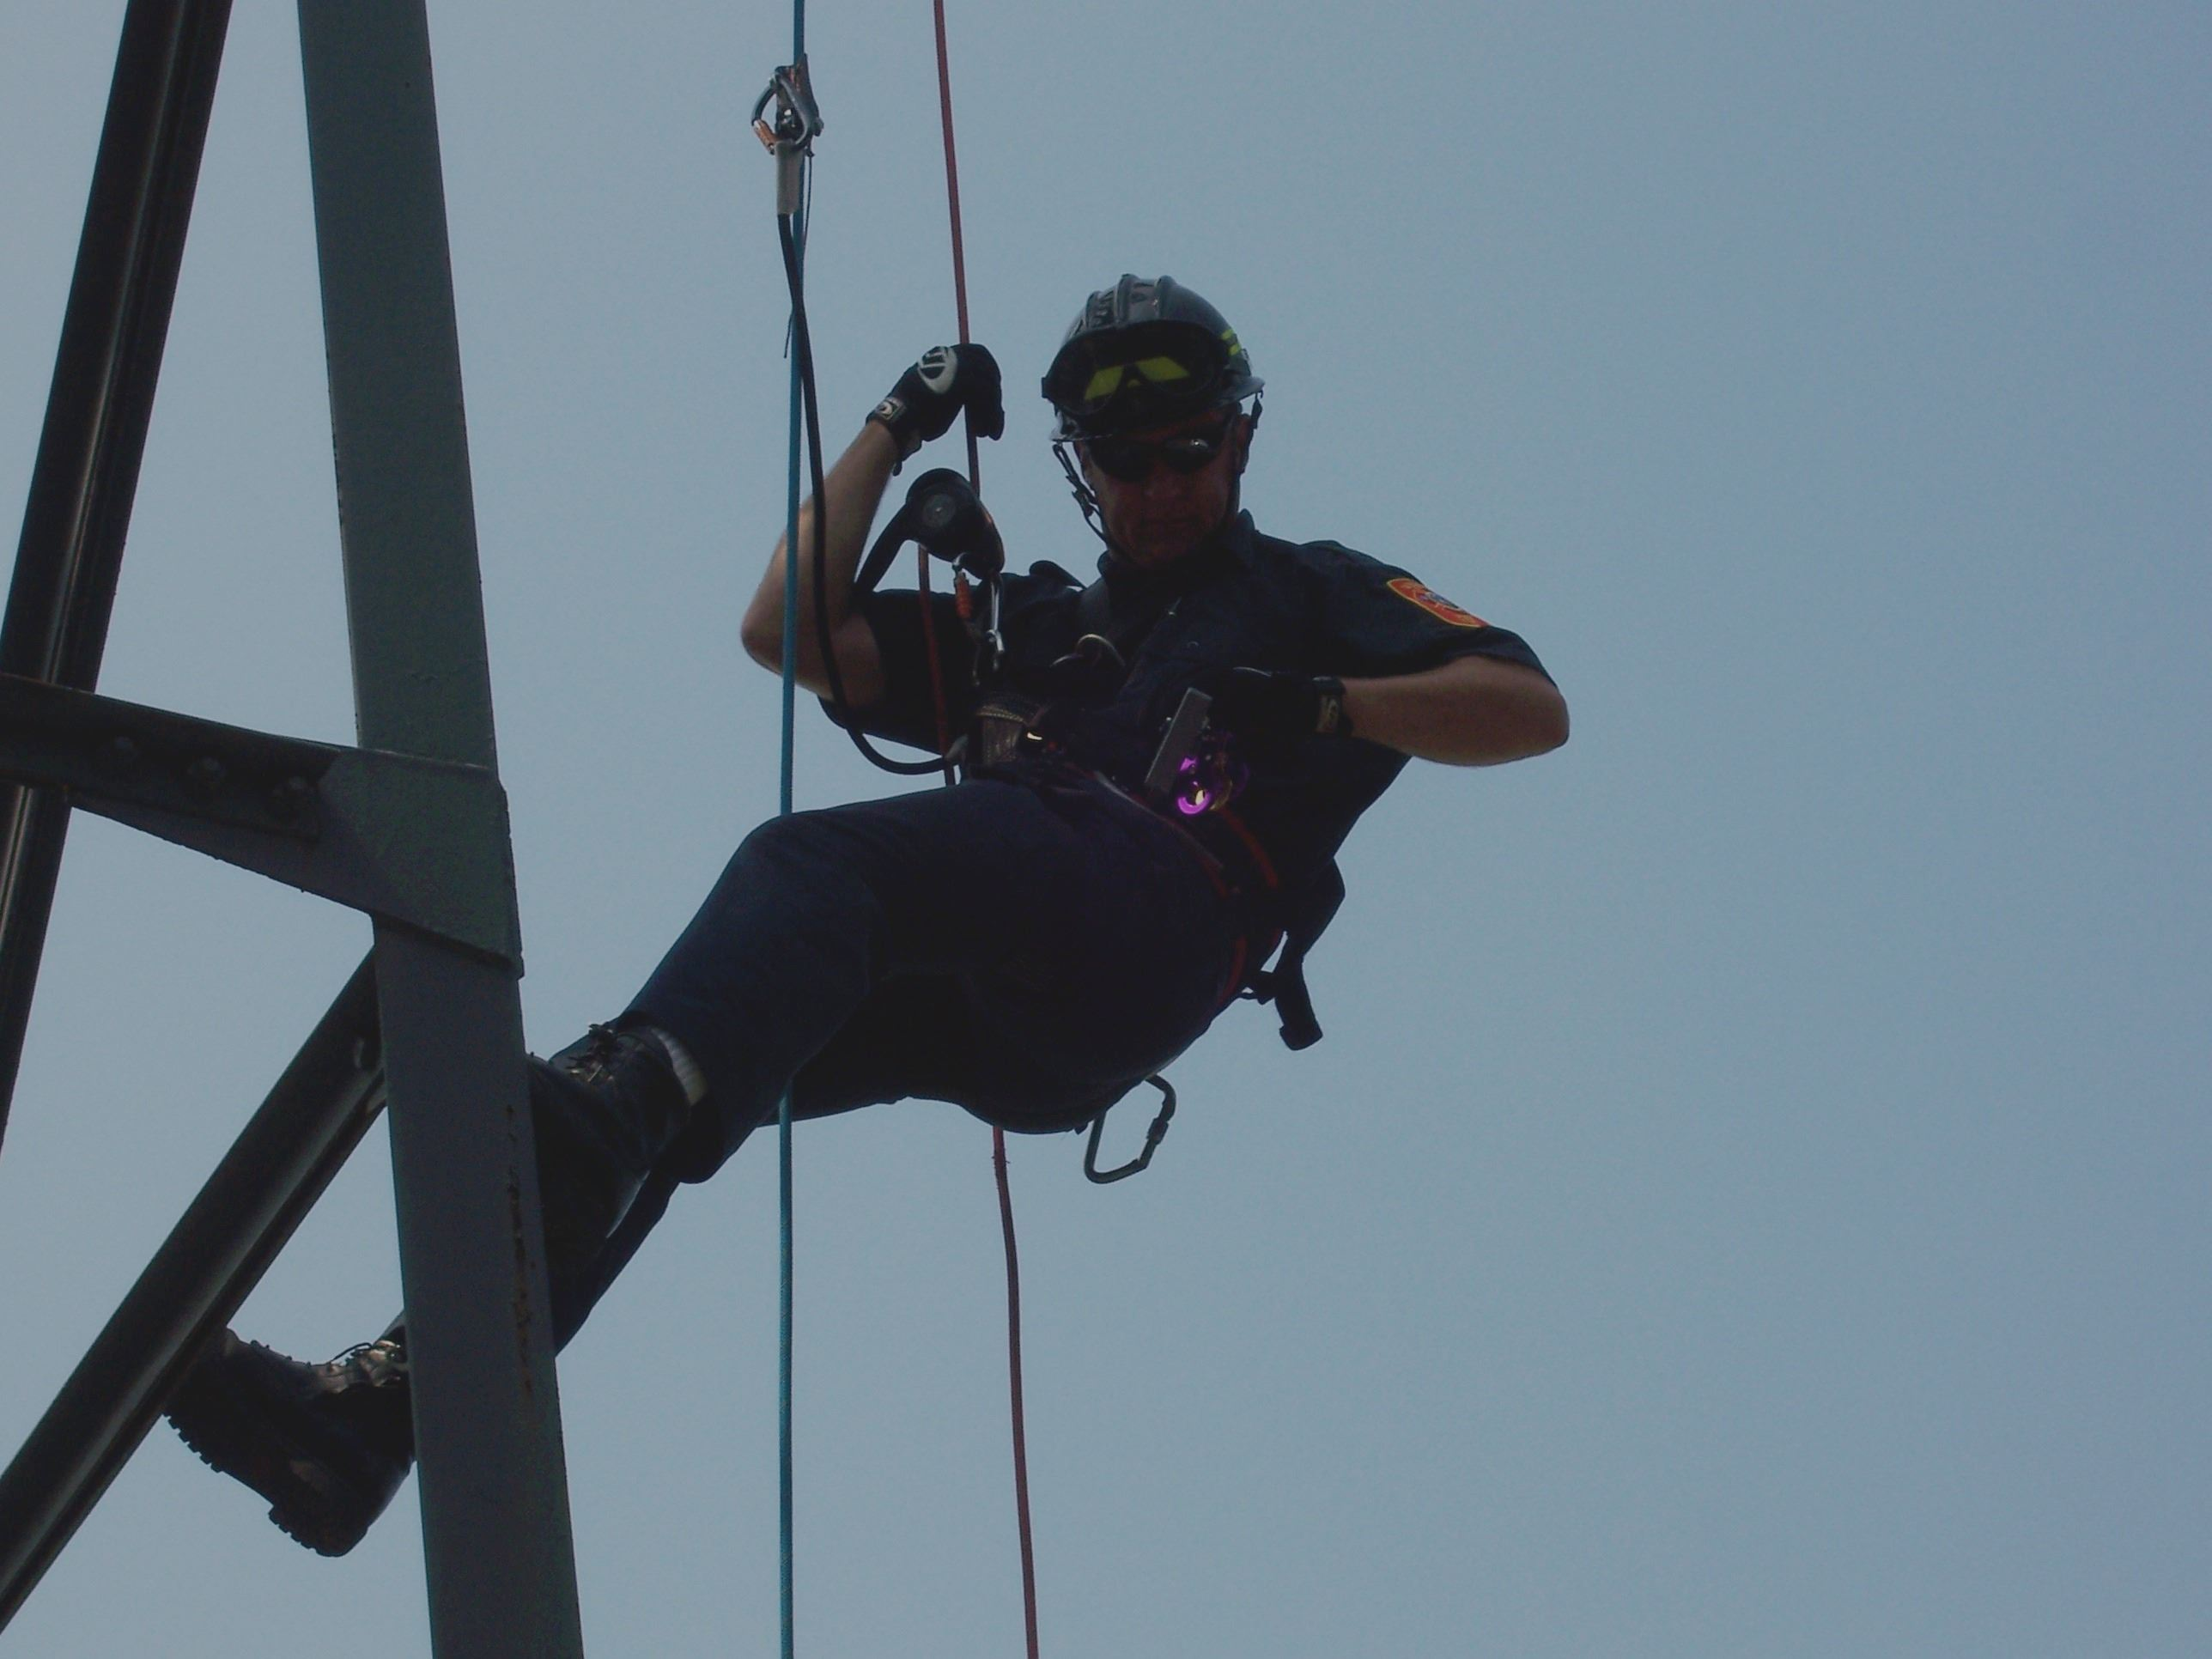 Firefighter Trains Repelling on a Rig